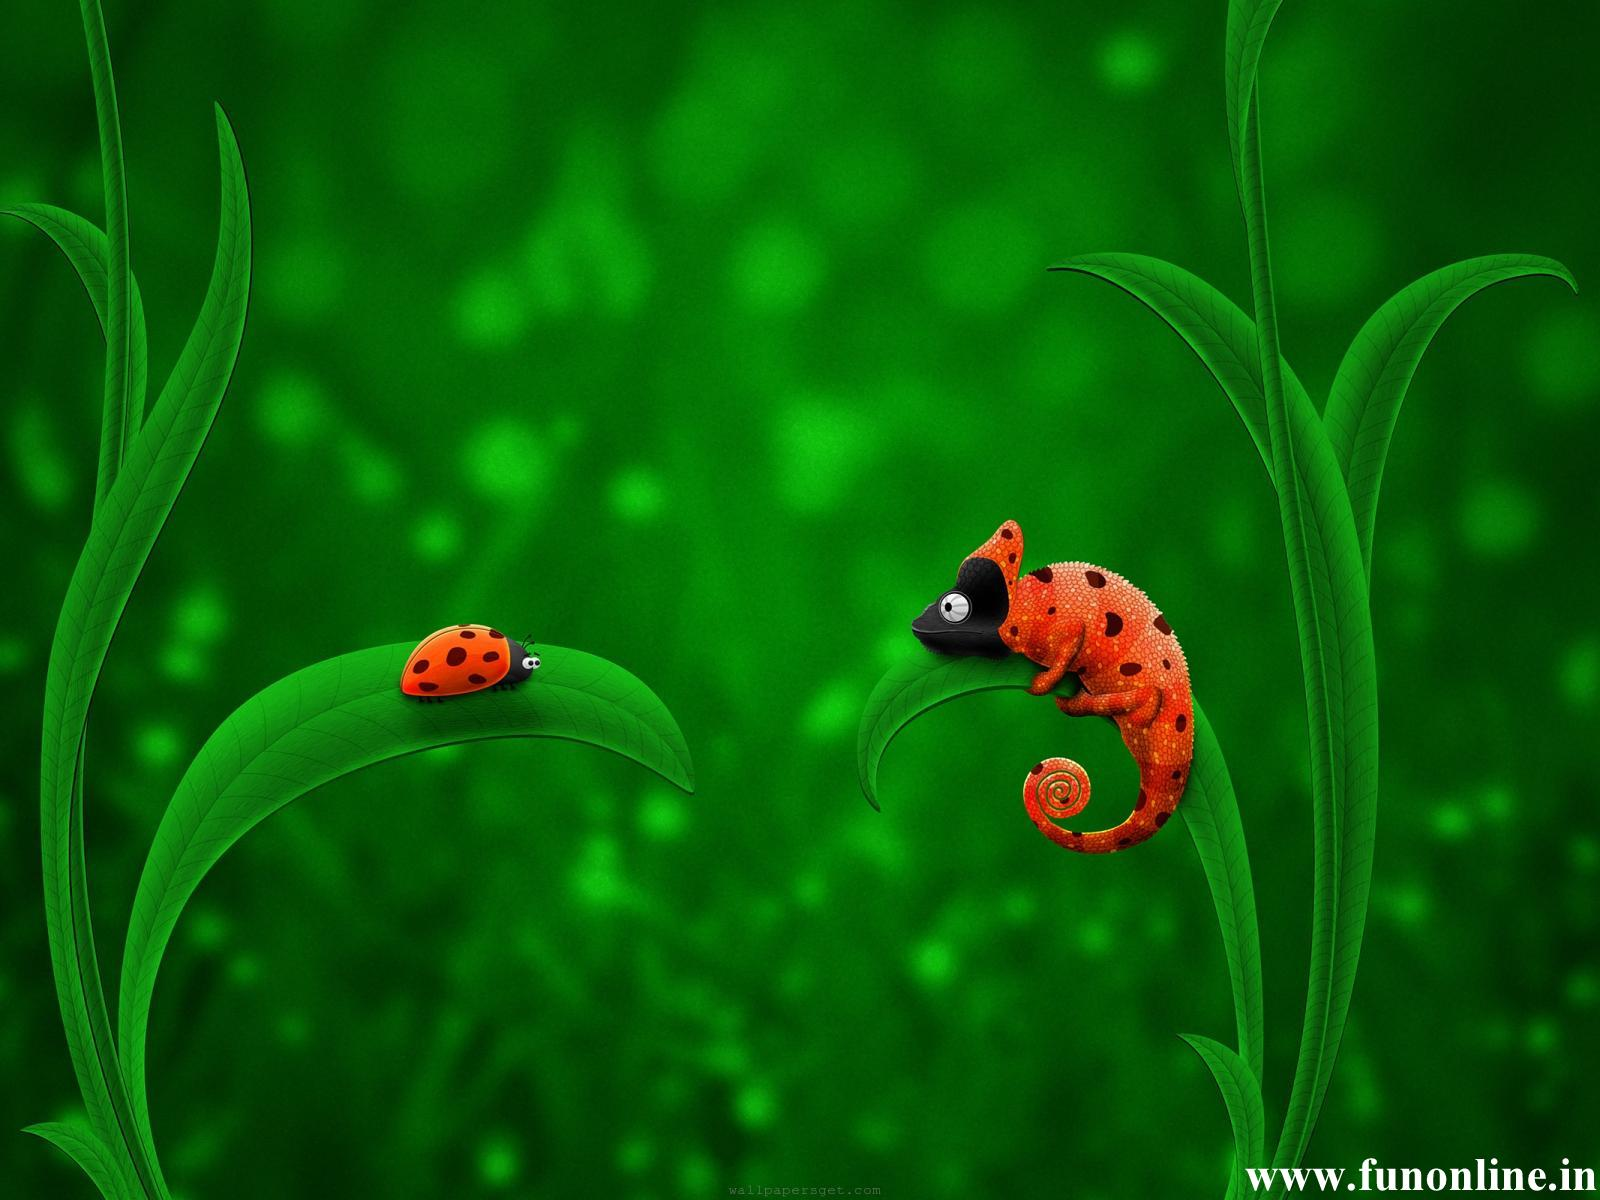 Iphone Wallpaper Icon Template Funny Chameleon Photos Online News Icon